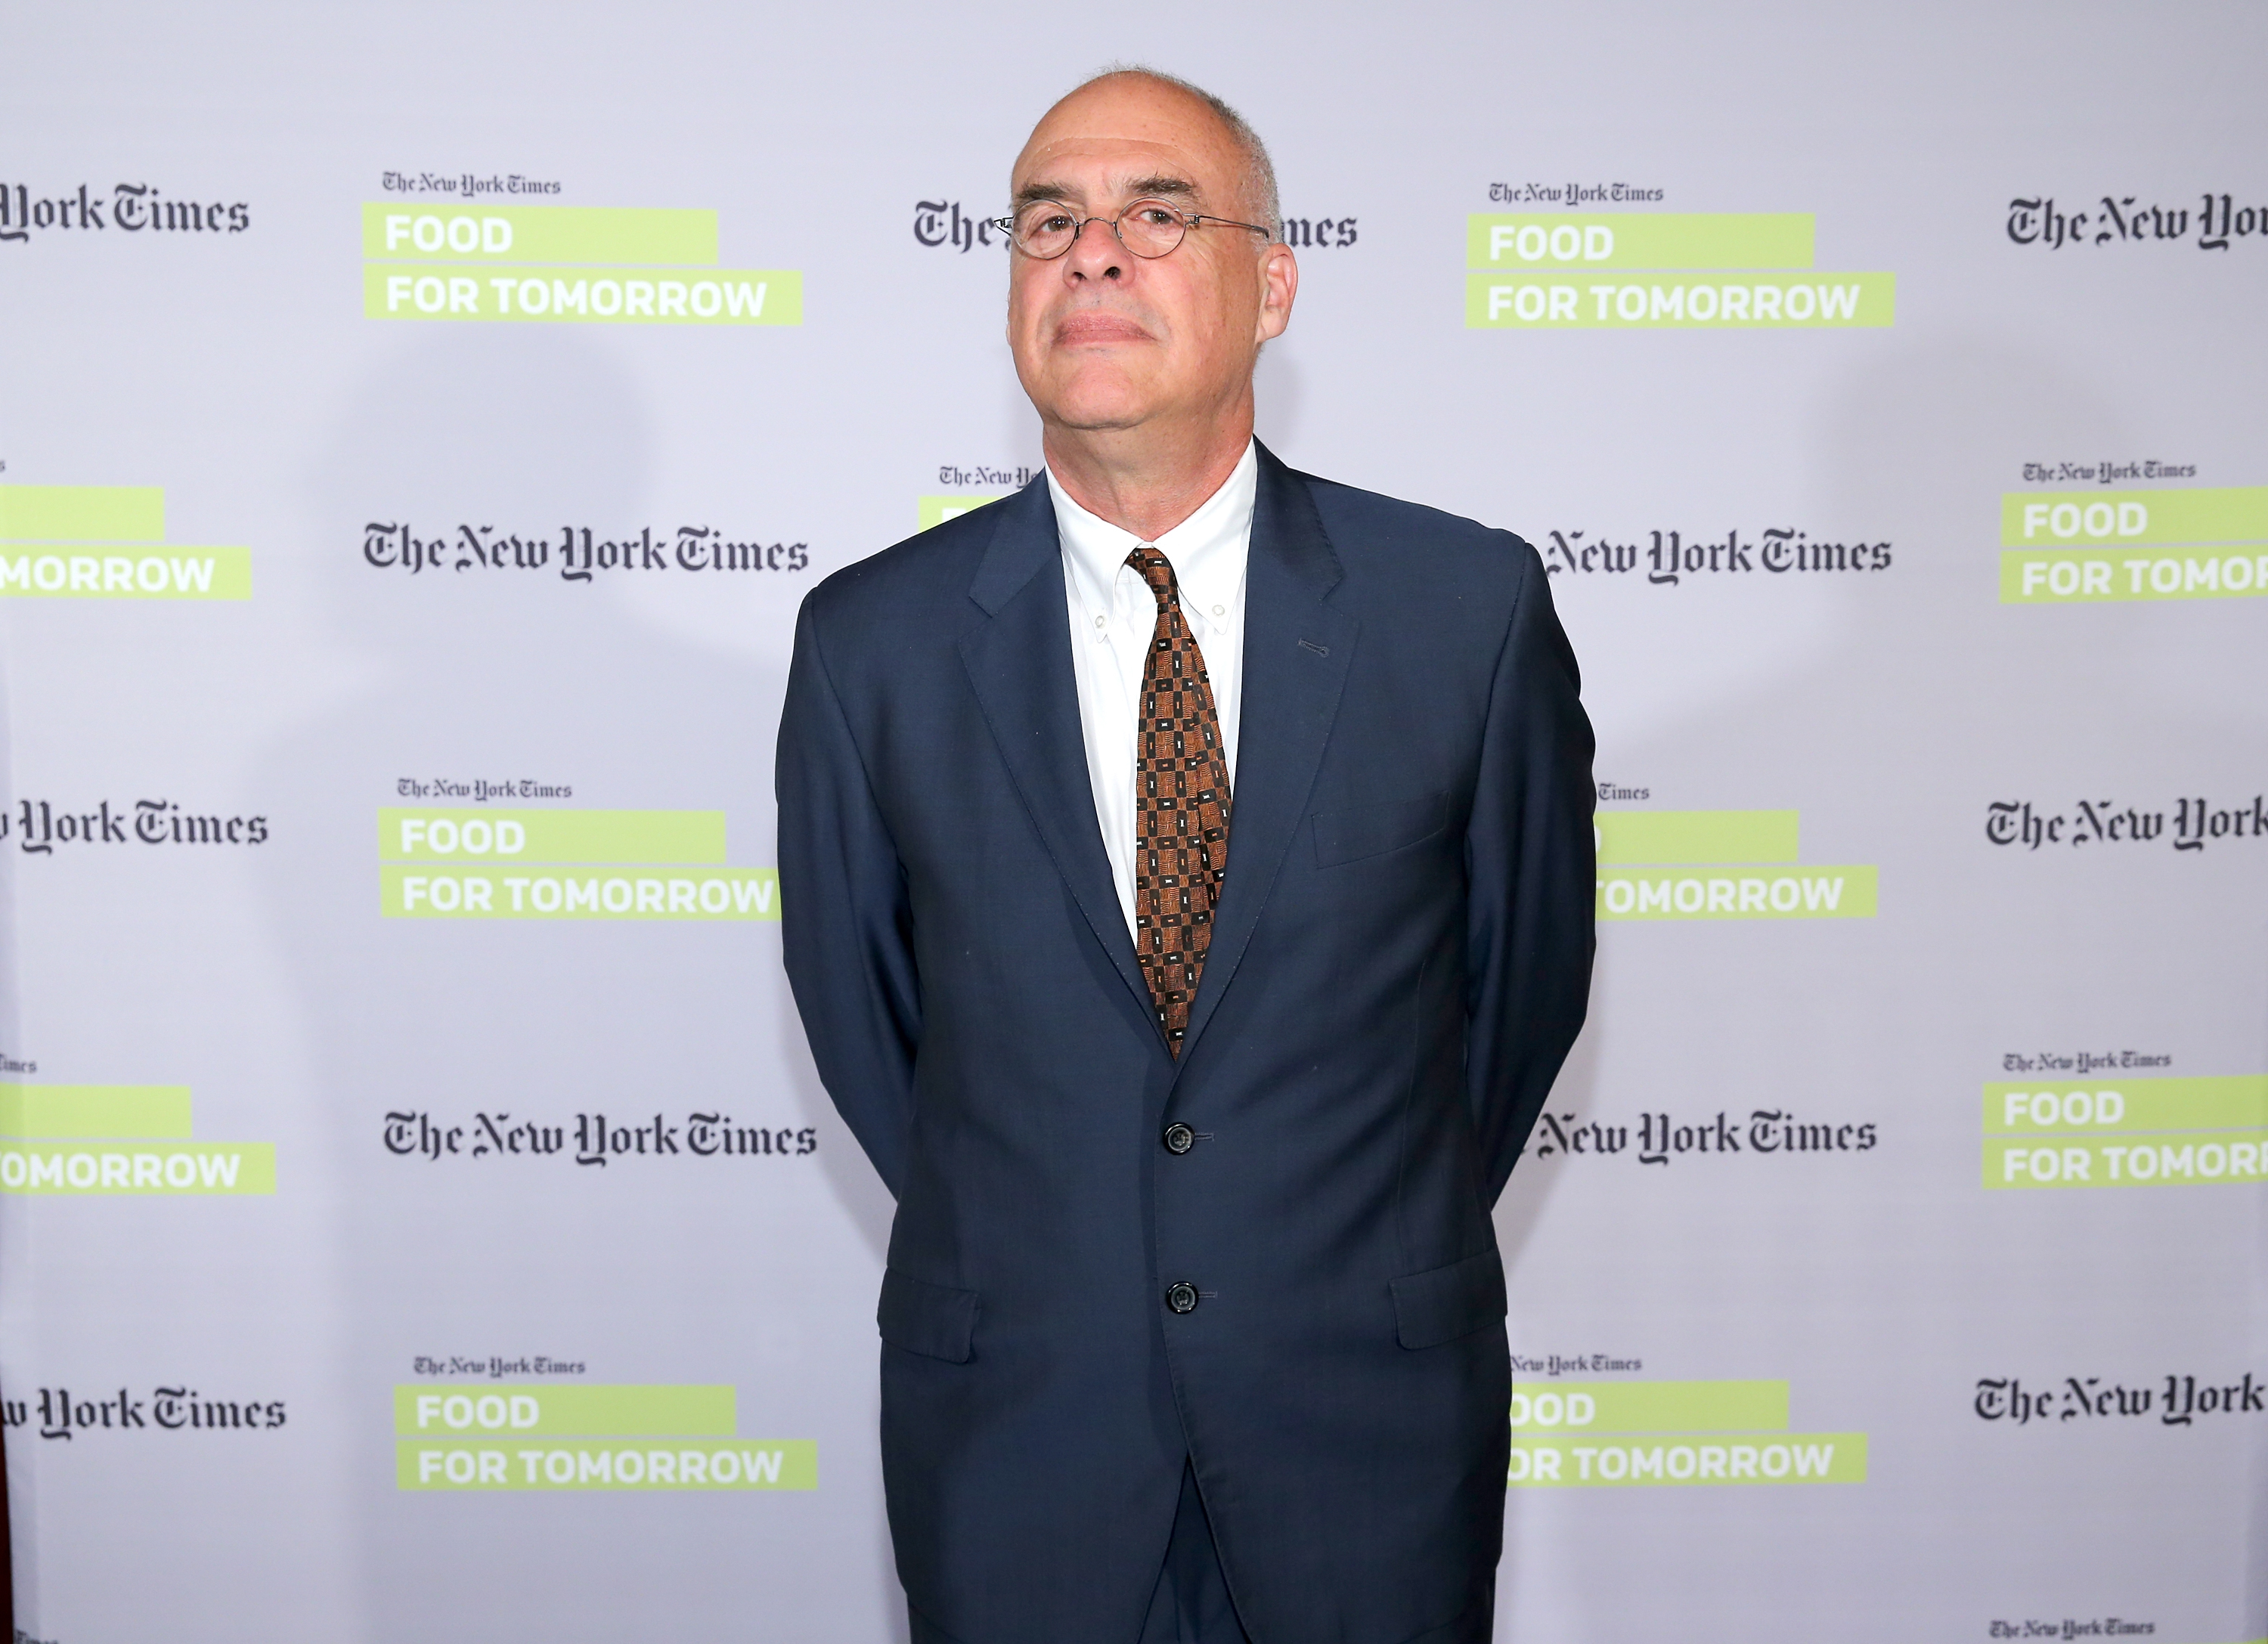 Mark Bittman Called Out for Accidentally Stealing Feminist Magazine's Name 'Salty'